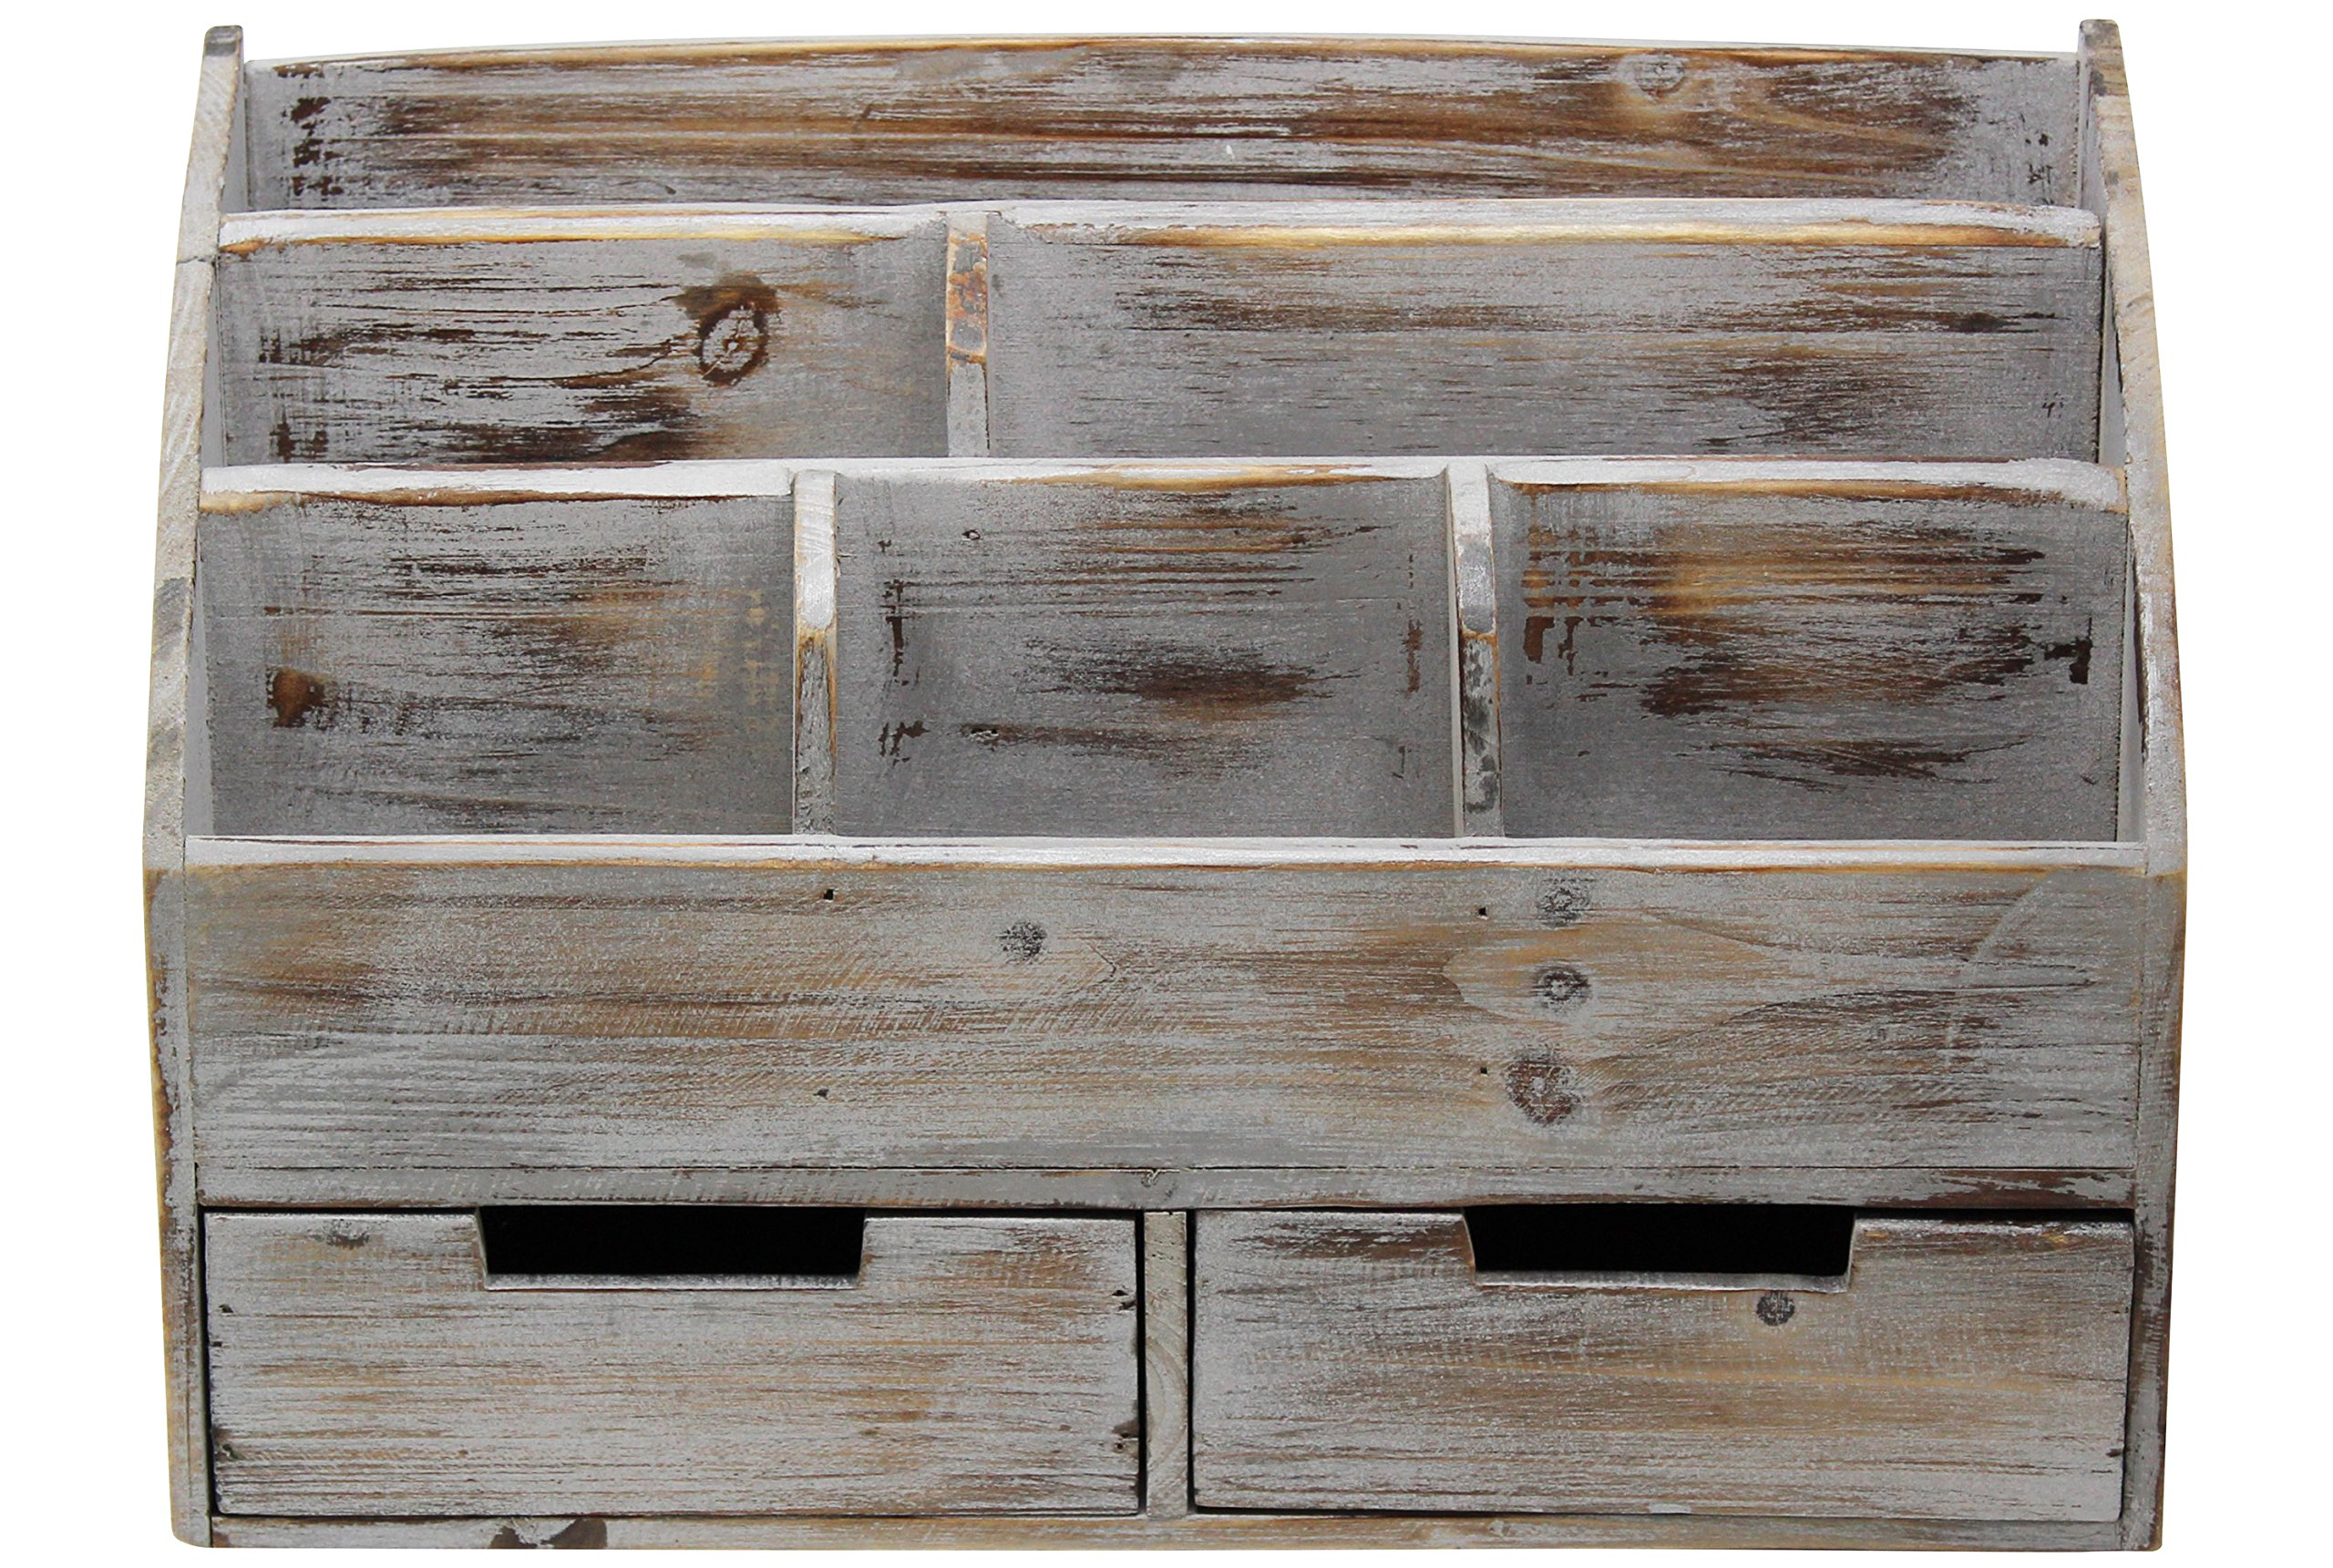 "Vintage Rustic Wooden Office Desk Organizer & Mail Rack for Desktop, Tabletop, or Counter - Distressed Torched Wood - for Office Supplies, Desk Accessories, Mail - MAKE AN IMPRESSION - Whether in Your Office or Kitchen, You Will Be Sure To Catch The Attention Of Your Visitors, Clients, or Boss With This Elegant Distressed Wood Organizer Caddy. TONS OF ROOM - With 6 Compartments and 2 Drawers, This Oversized Organizer Will Hold All of Your Desk Accessories, Mail, or Office Supplies. LARGE OVERALL DIMENSIONS - 14.3"" Wide x 6"" Deep x 9.8"" High - Leaves Plenty Of Room To Hold Letter and Legal Size Notebooks & Paper, Oversized Envelopes, And Many Other Home or Office Desk Supplies - living-room-decor, living-room, home-decor - 91moMY9RESL -"